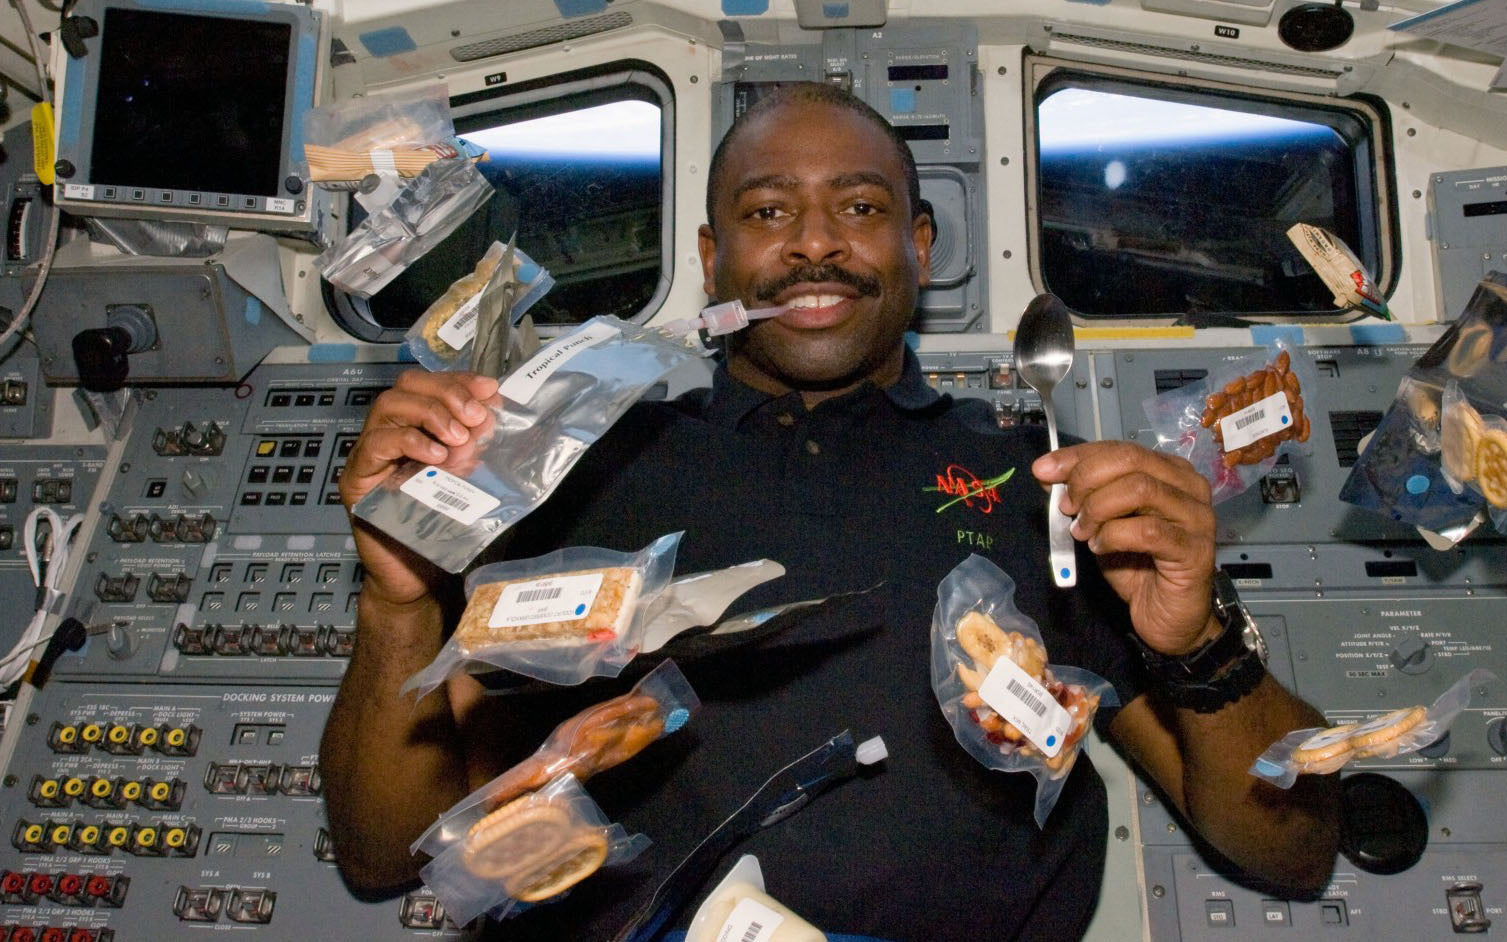 Space Food 101: What Do Astronauts Really Eat In Space?